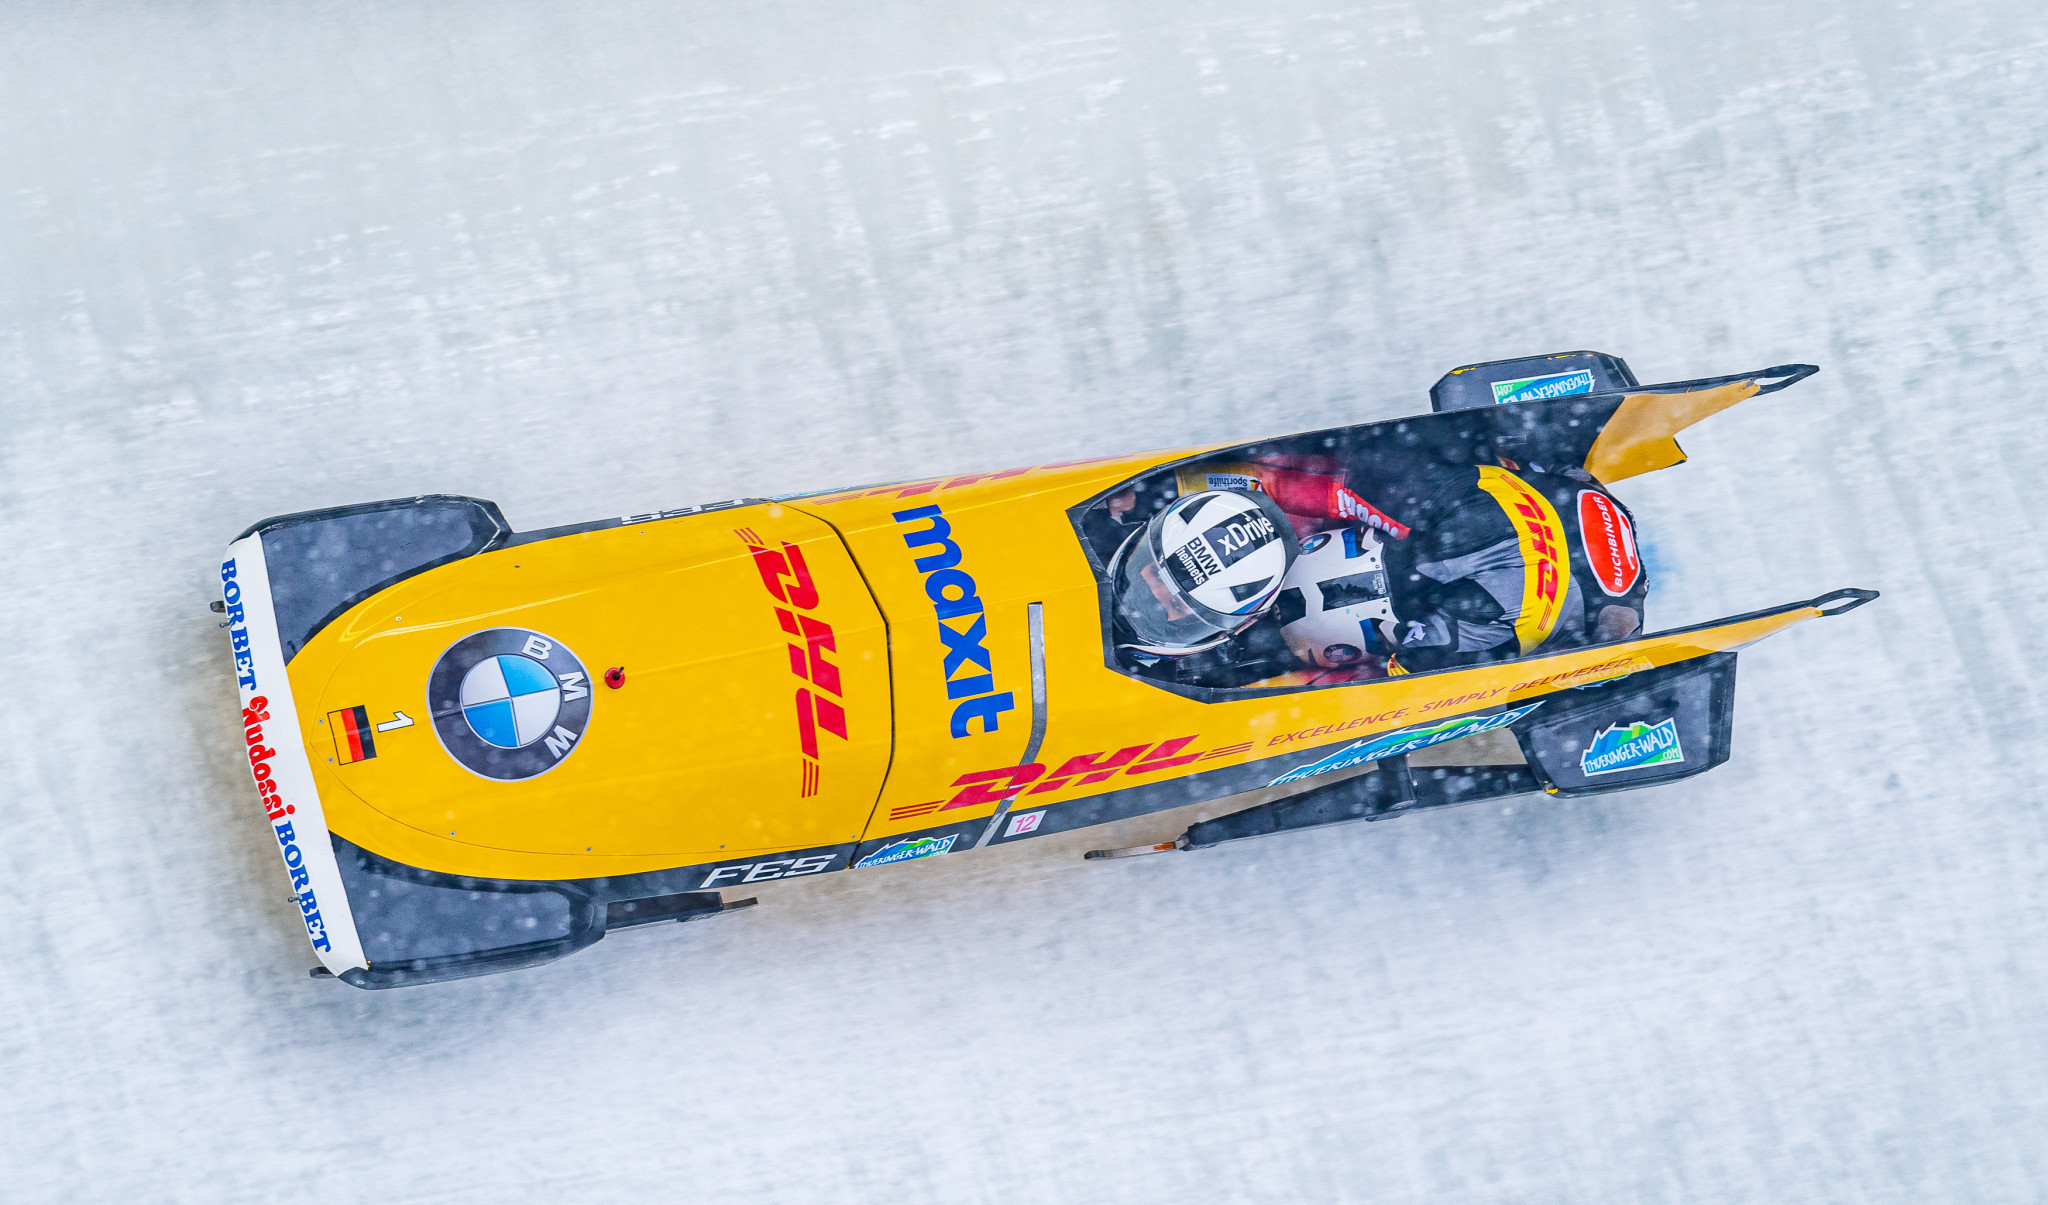 Germany's defending champion Mariama Jamanka is outside the podium positions at the halfway stage of the two-woman bob at the IBSF World Championships in Altenberg ©Getty Images